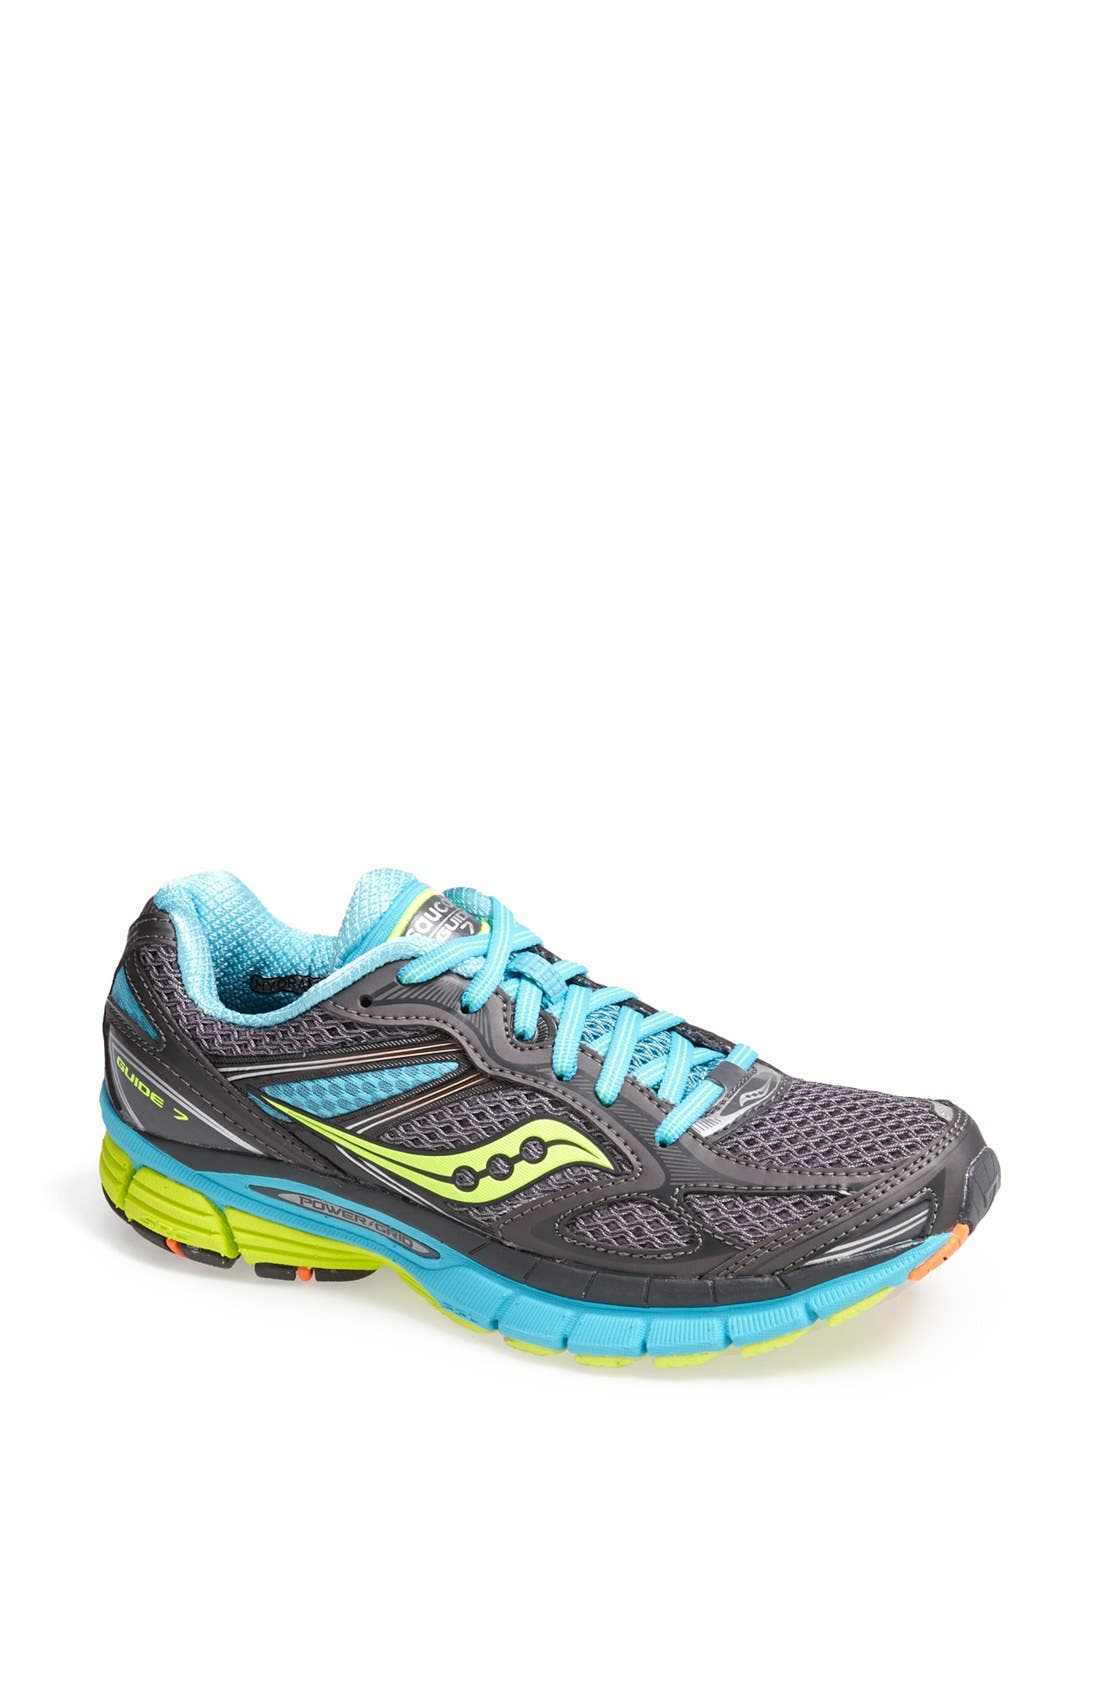 Alternate Image 1 Selected - Saucony 'Guide 7' Running Shoe (Women)